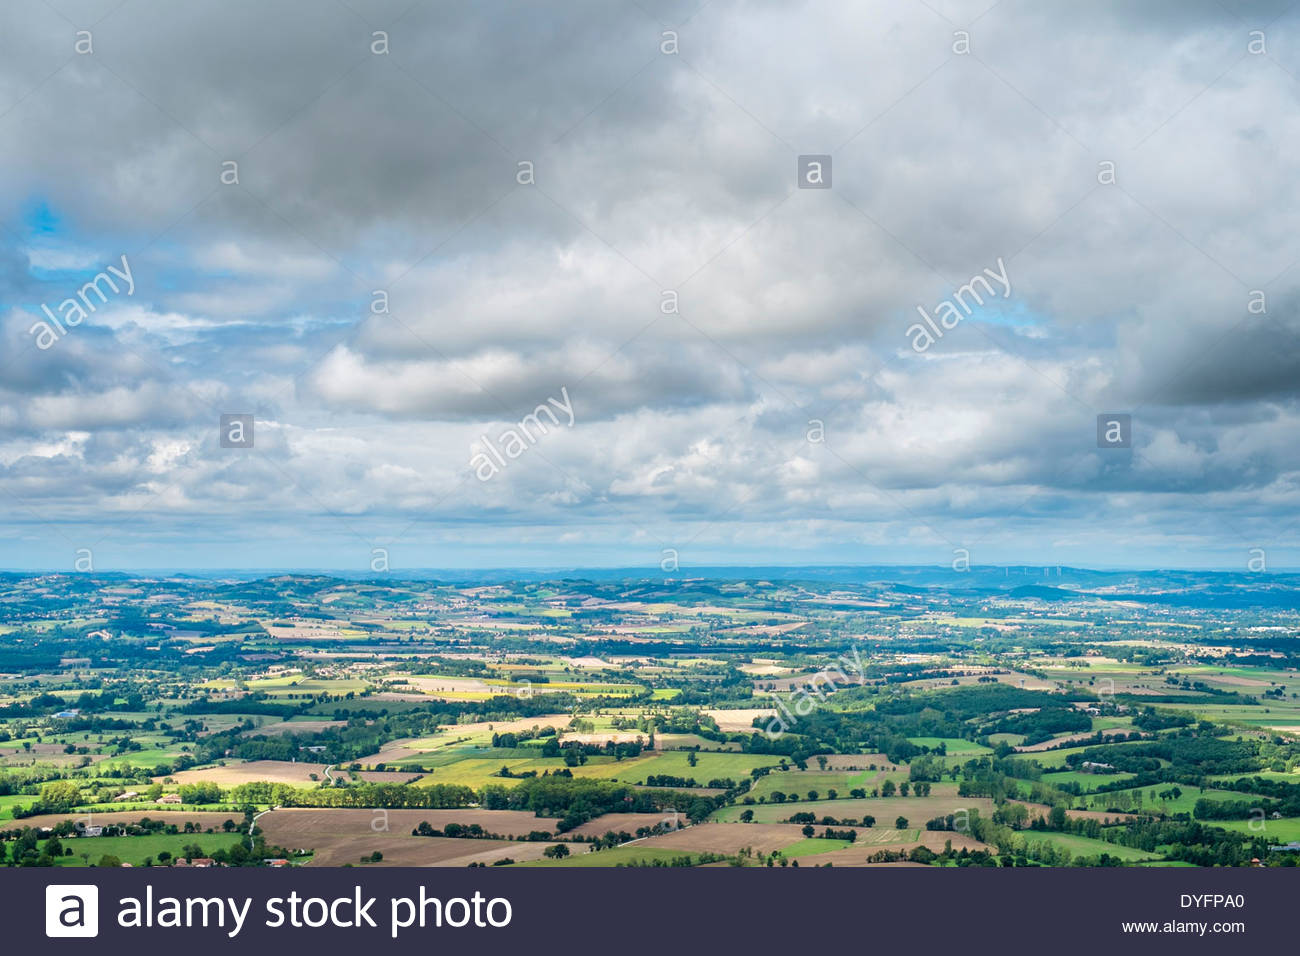 View overlooking farmland in valley, near Dourgne, Tarn Department, Midi-Pyrénées, France - Stock Image